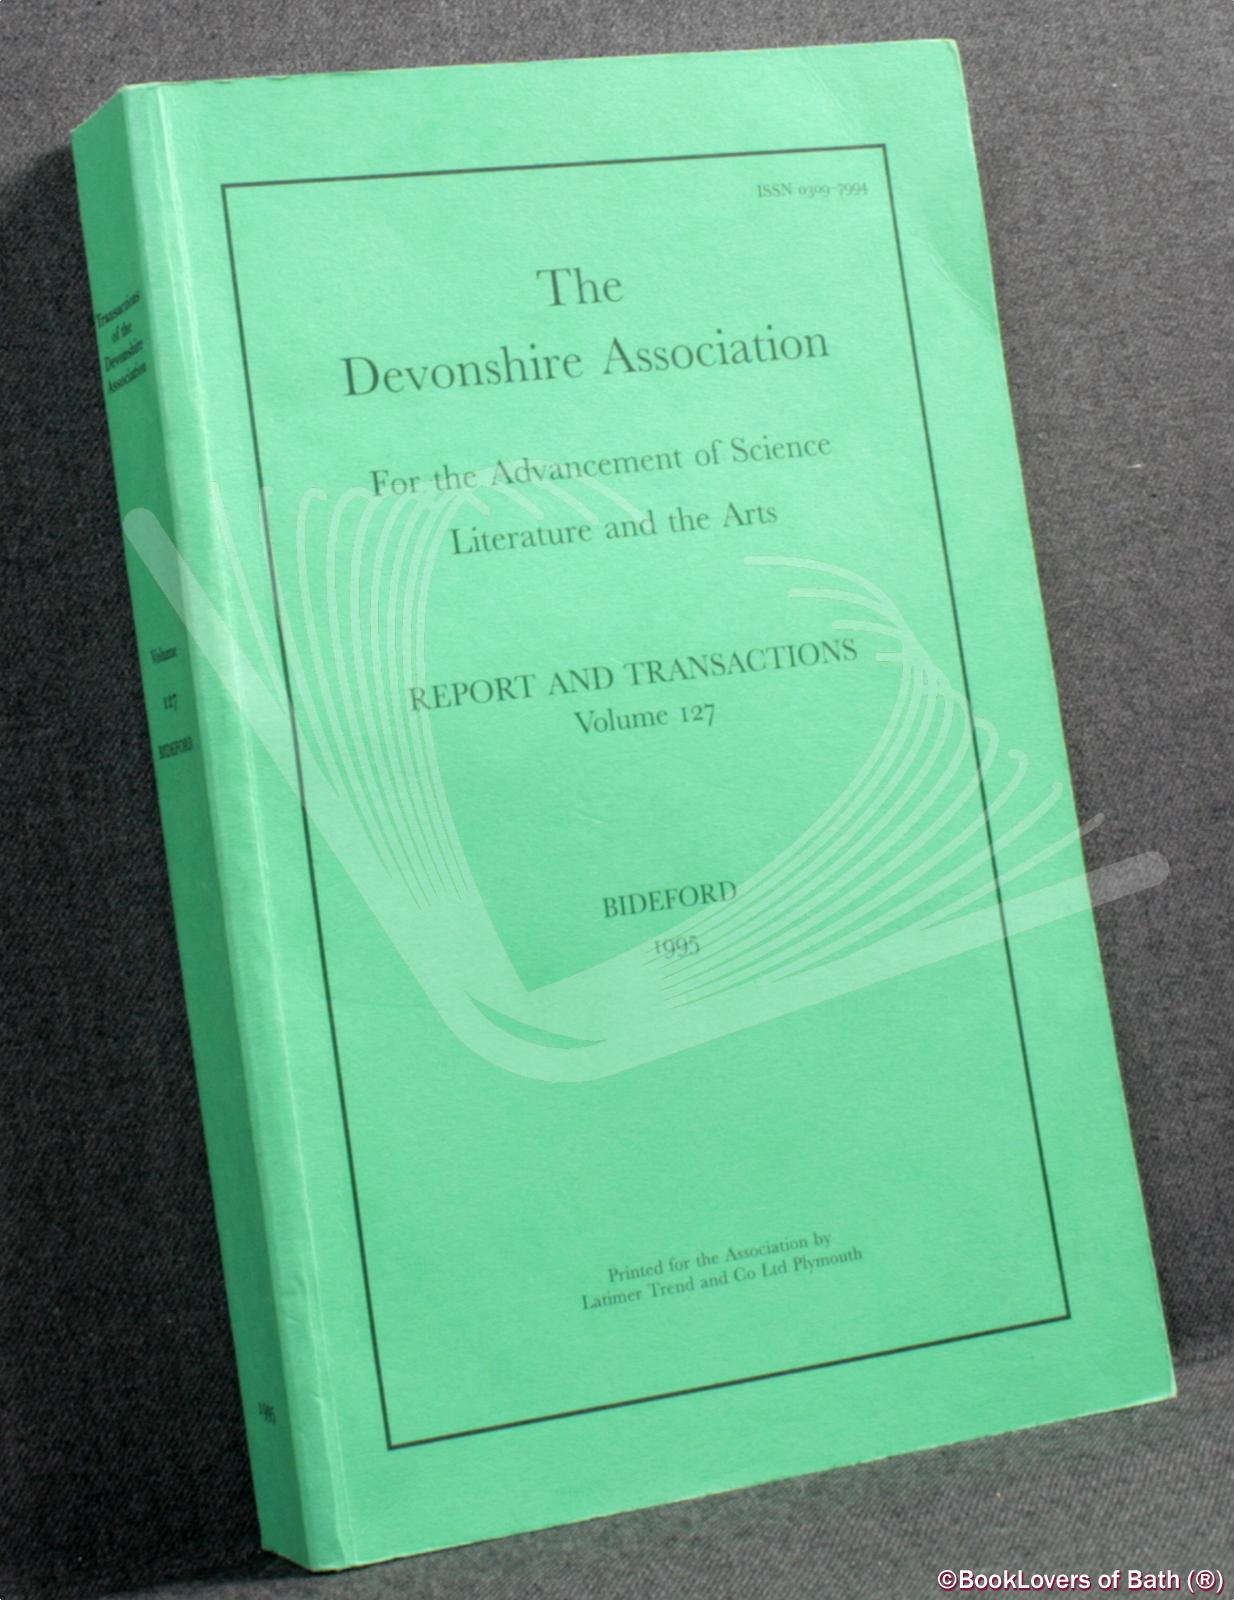 The Devonshire Association for the Advancement of Science, Literature and Art: Report and Transactions Volume 127 Bideford 1995 - Anon.